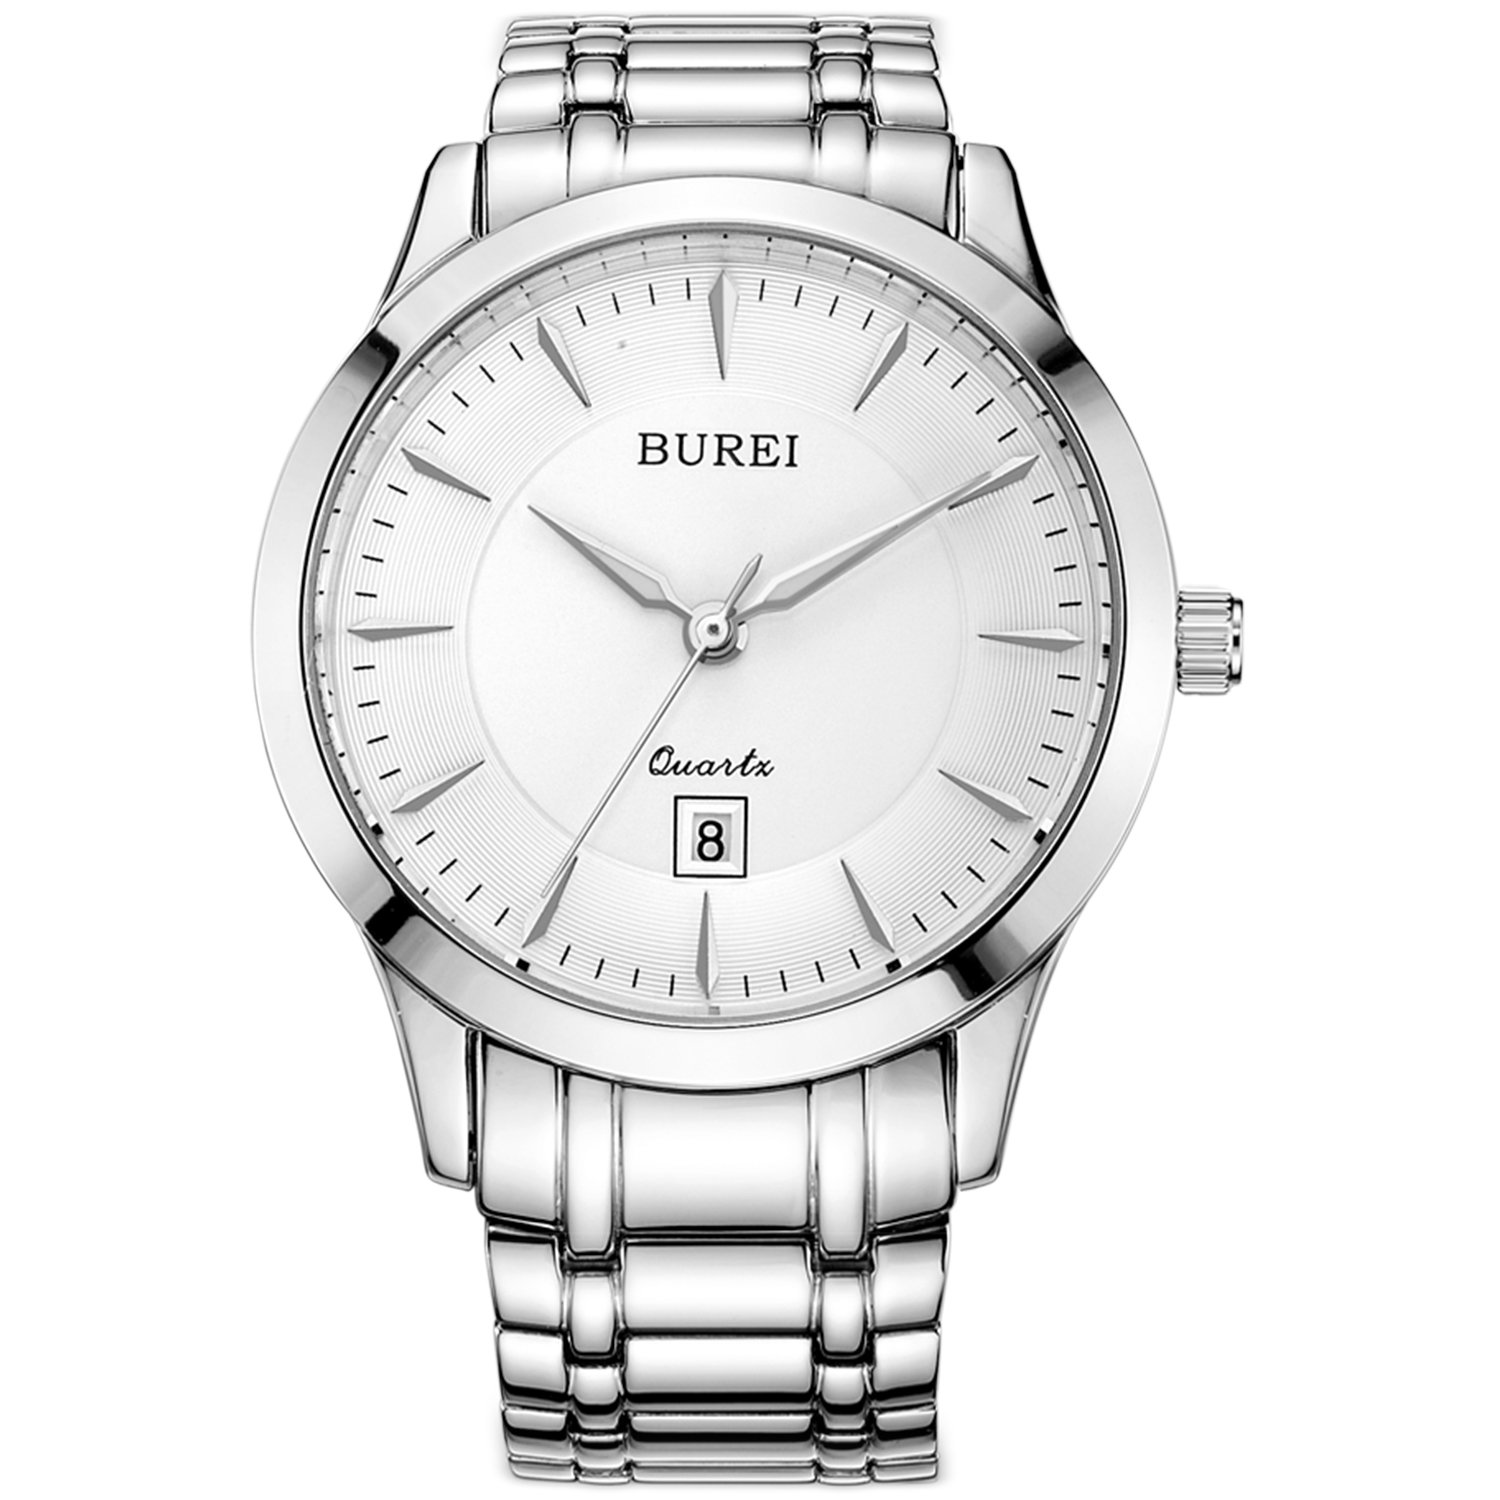 BUREI Men Women Watches Automatic Watch Classic Quartz Wrist Watch Fashion Analog Dial Round Case Stainless Steel Band and Leather Strap (L-3005-P51AY-1)